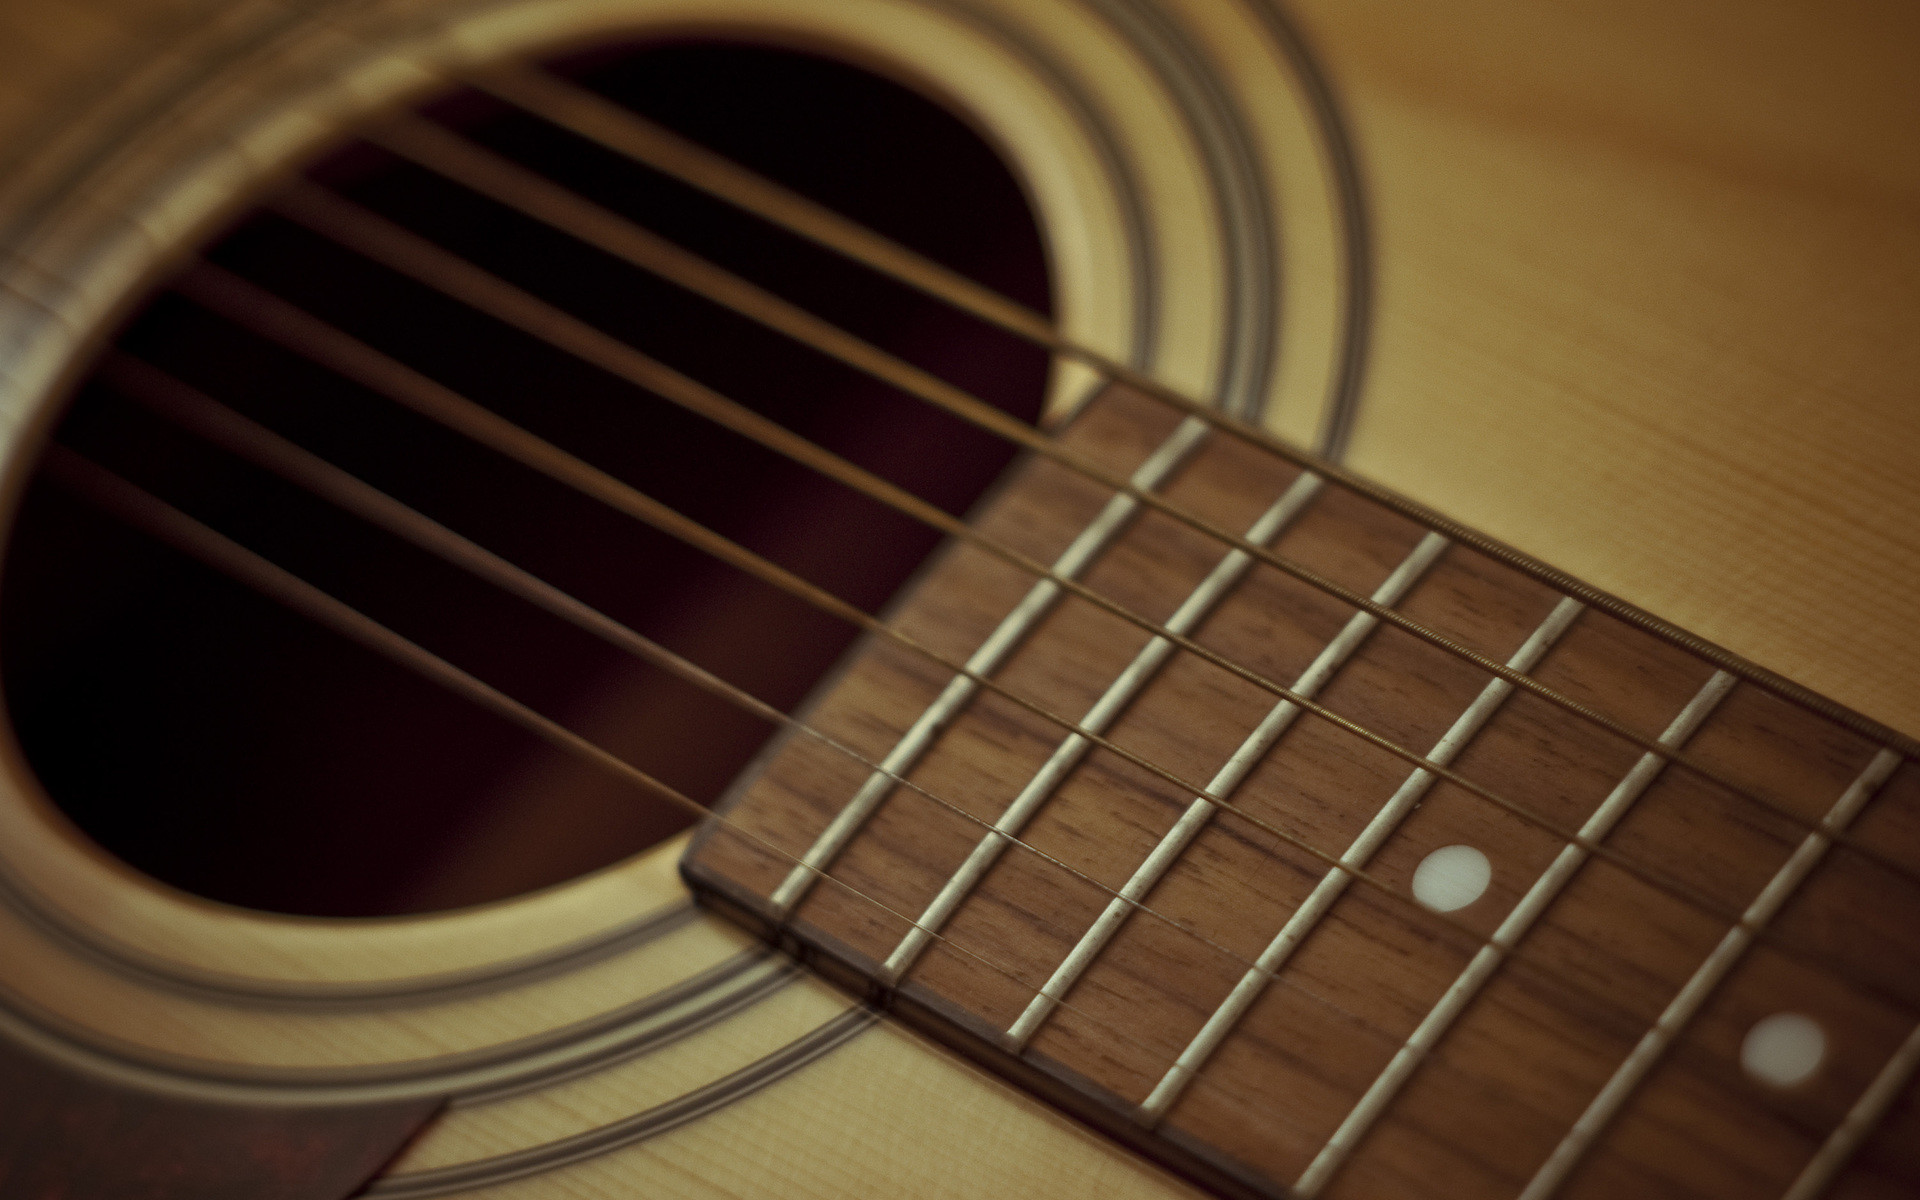 1920x1200 Guitar images Guitar HD wallpaper and background photos